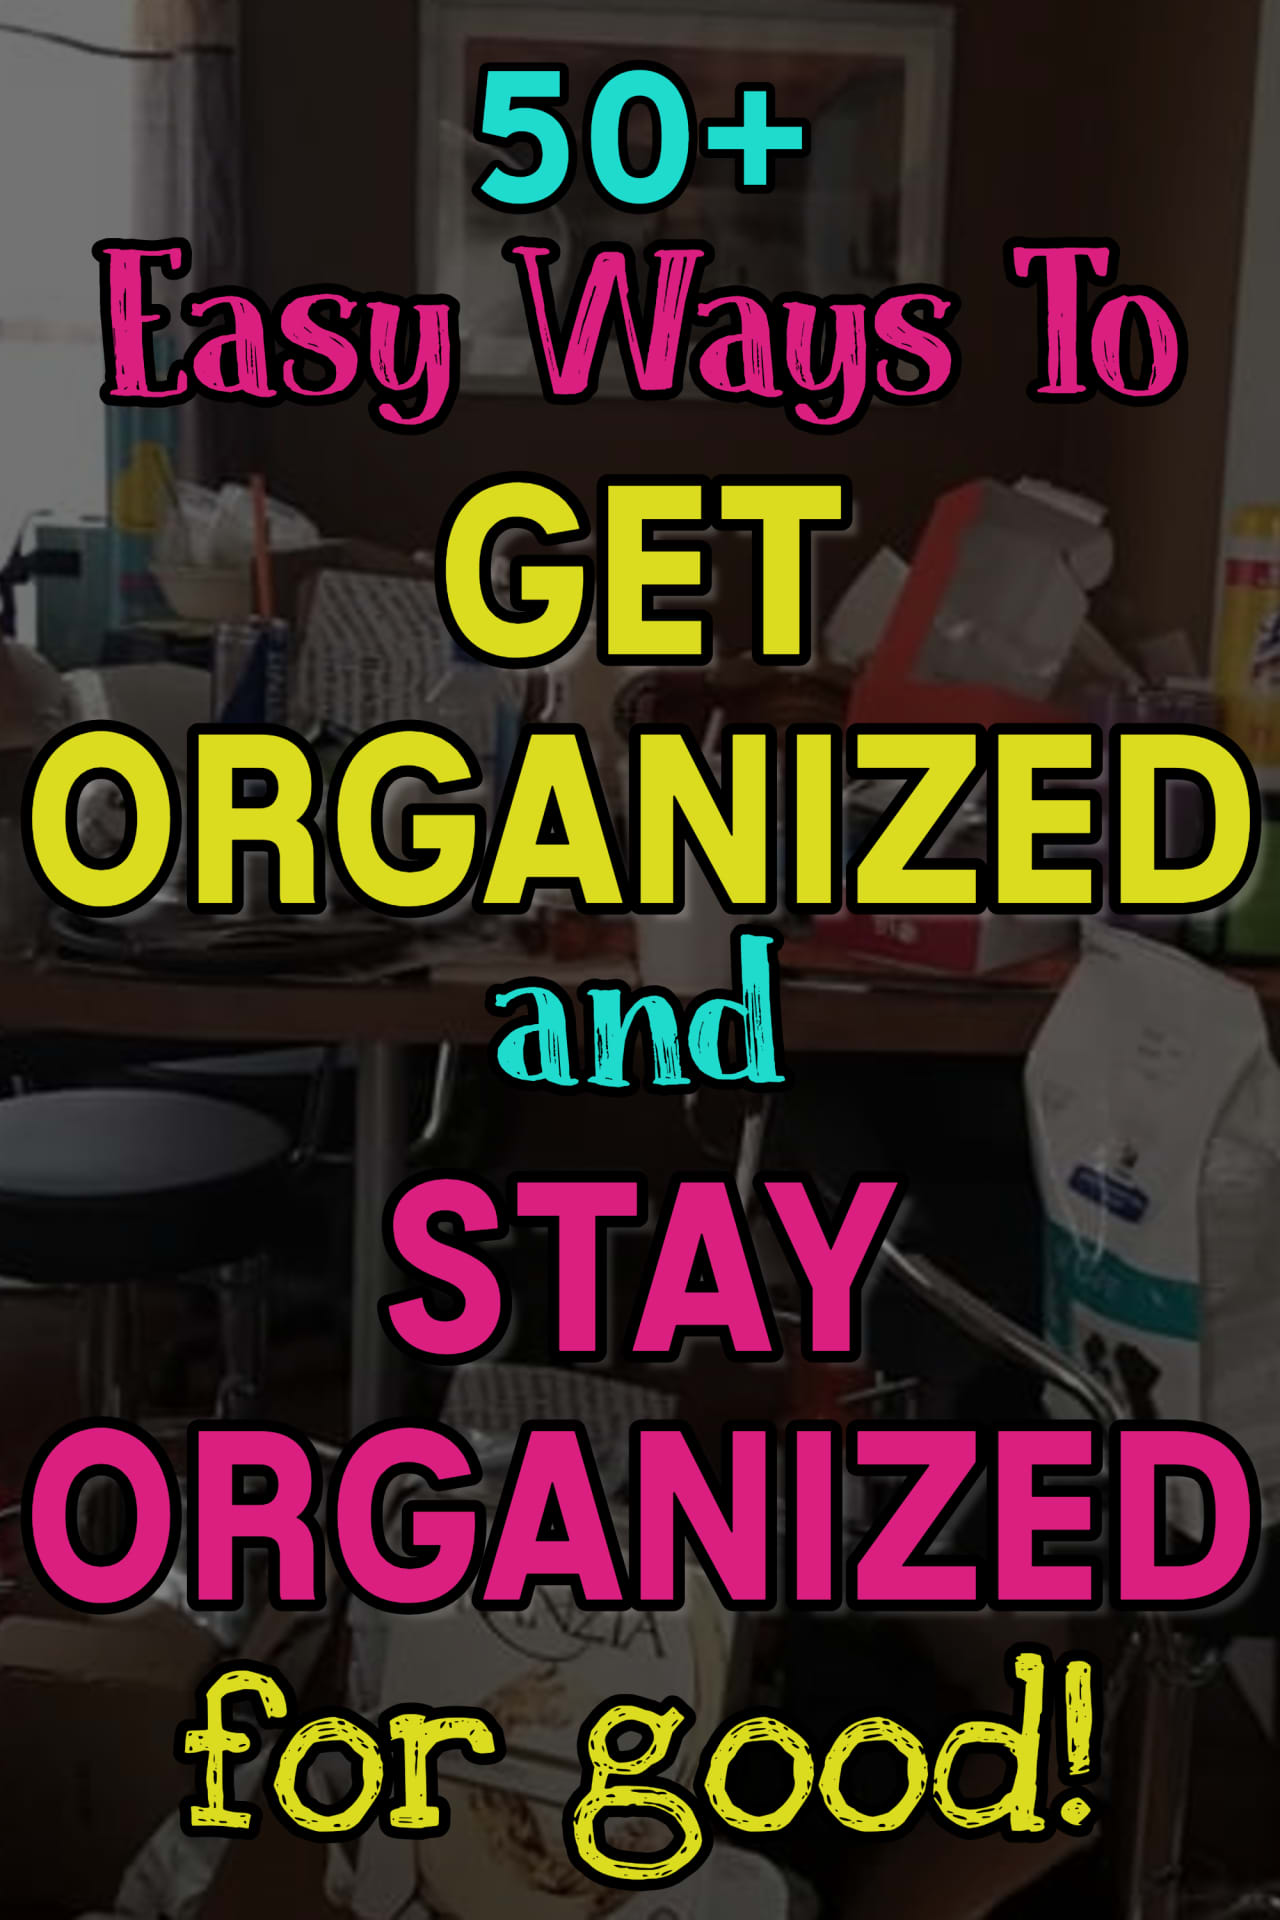 Get Organized At Home! Getting Organized at Home Where to Start - 50+ ways to organize everything in your home the EASY way (even if you want to know how to organize your home on a BUDGET). These clever ways to organize your room, small spaces, and random JUNK are all budget-friendly and such simple DIY storage and organization ideas!